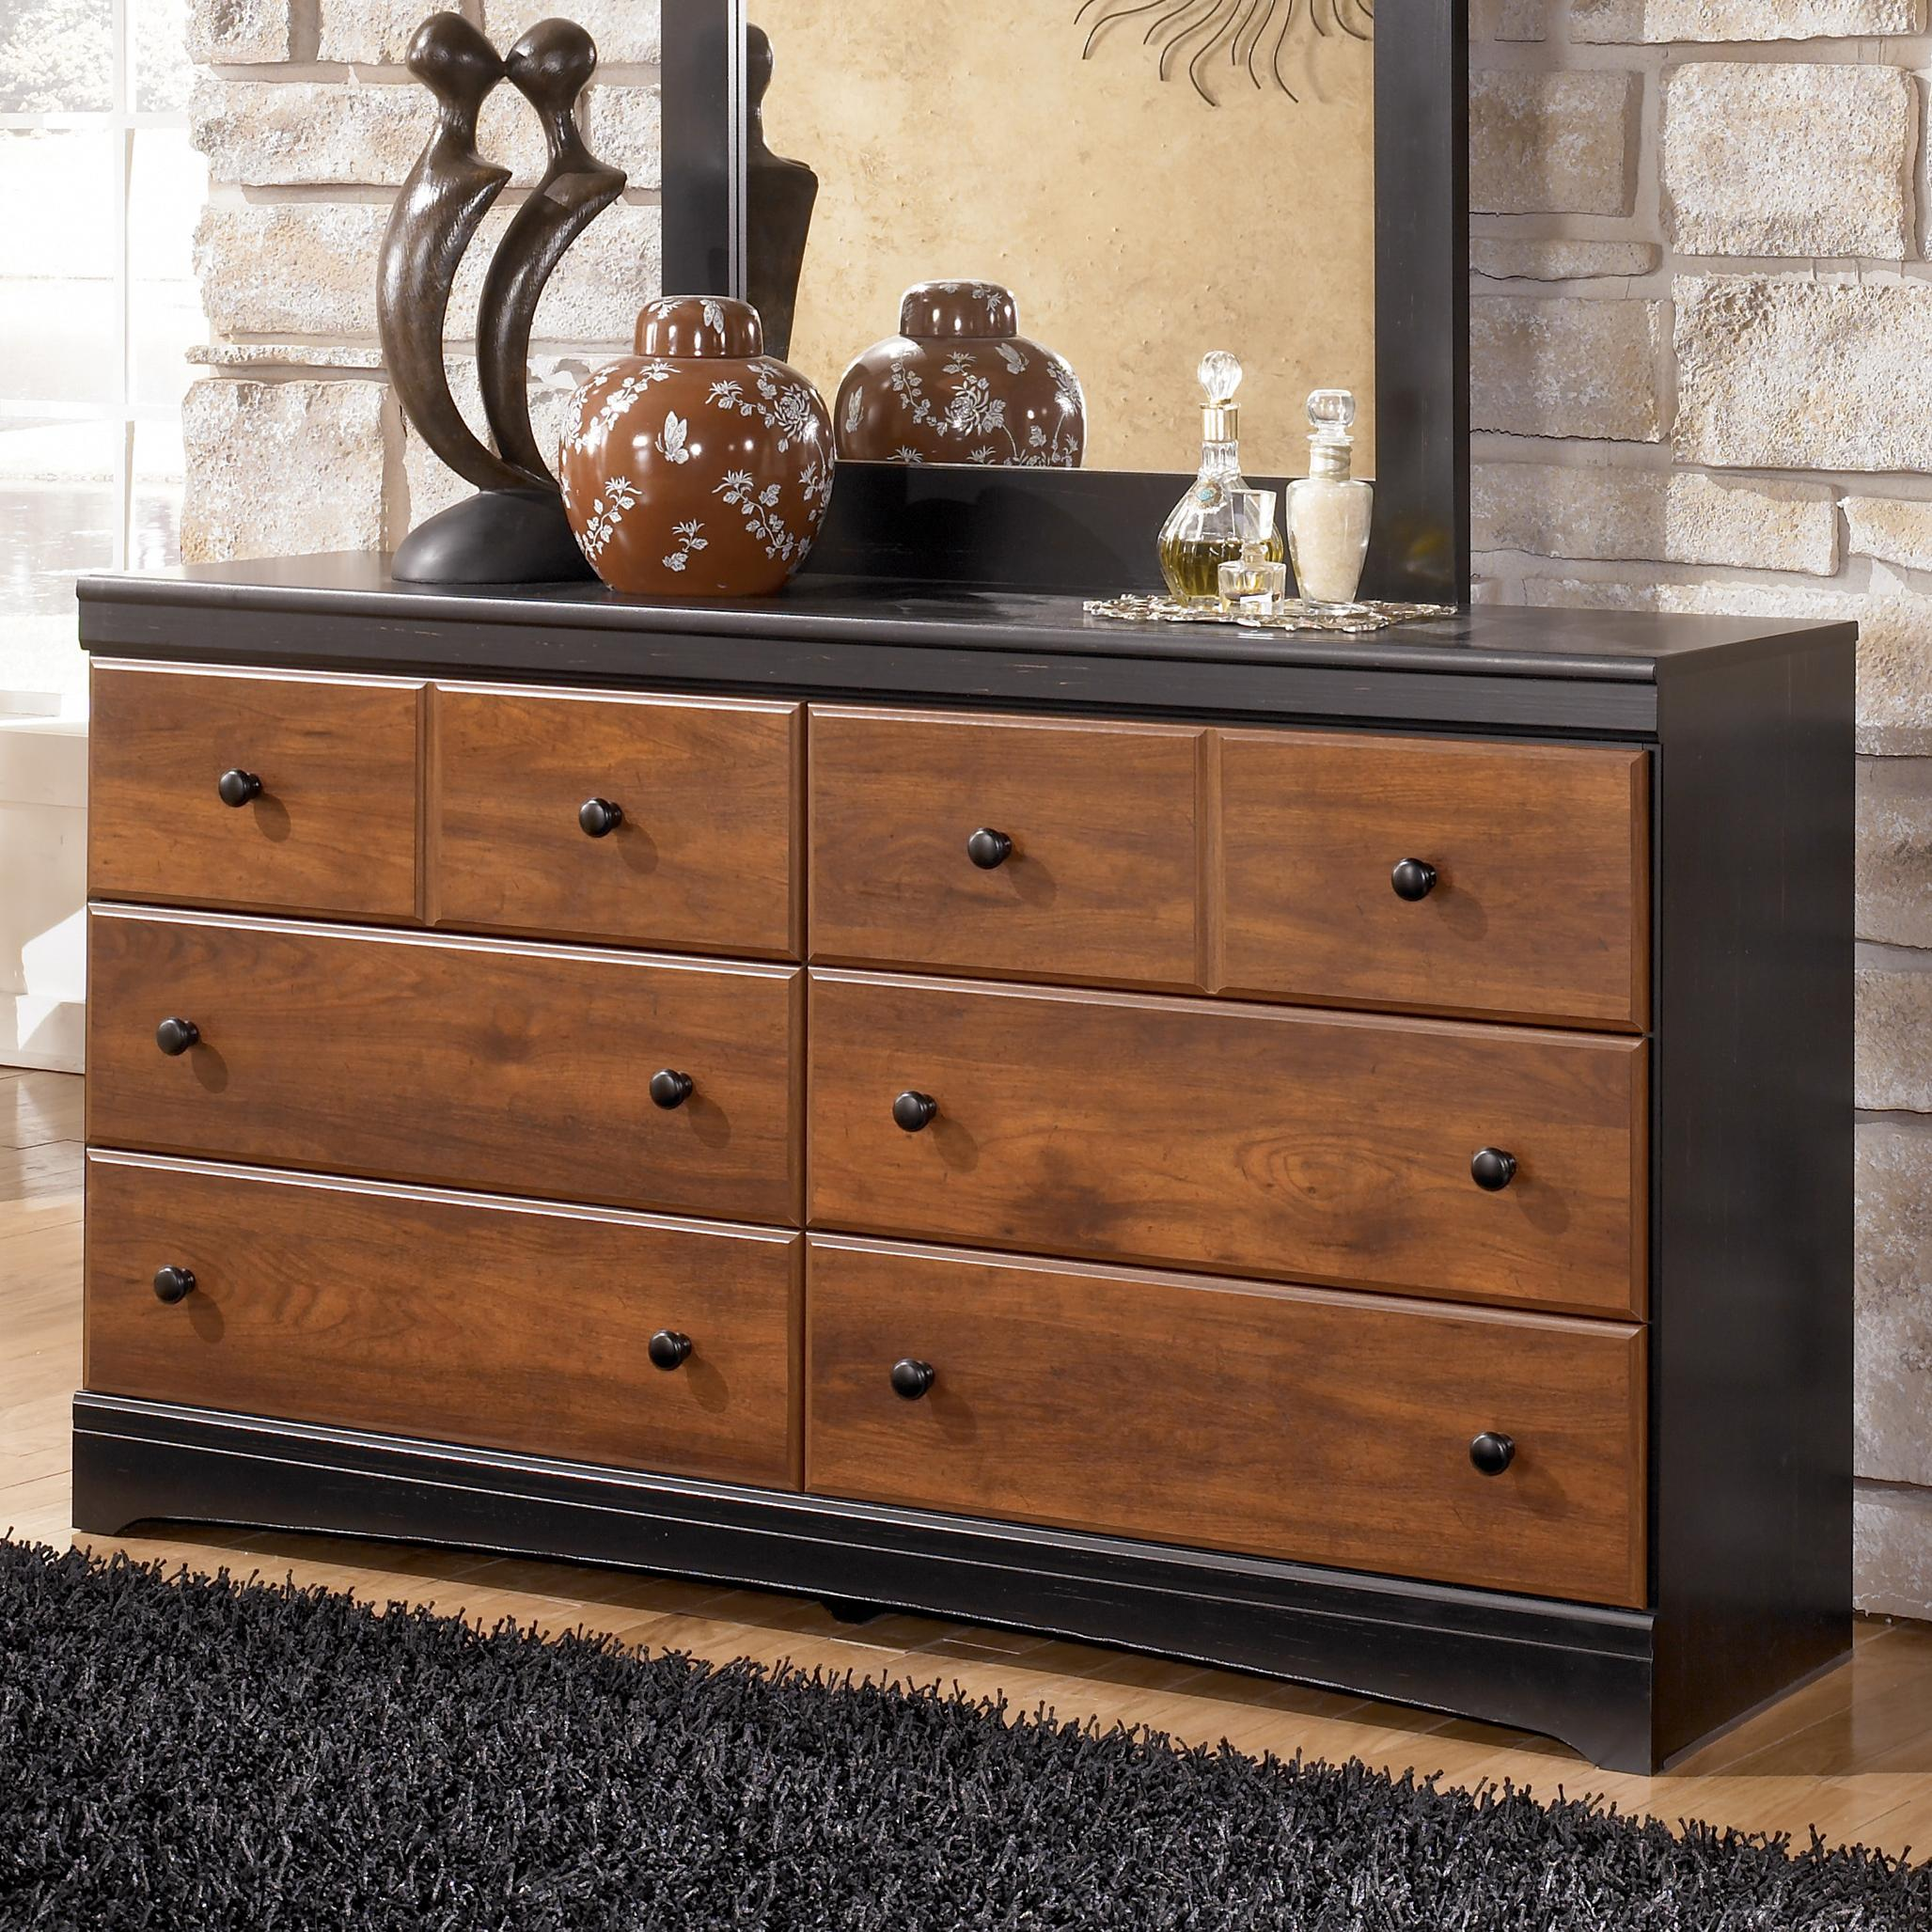 Ashley Signature Design Aimwell B136 31 Two Tone Finish Dresser With 6 Drawers Dunk Bright